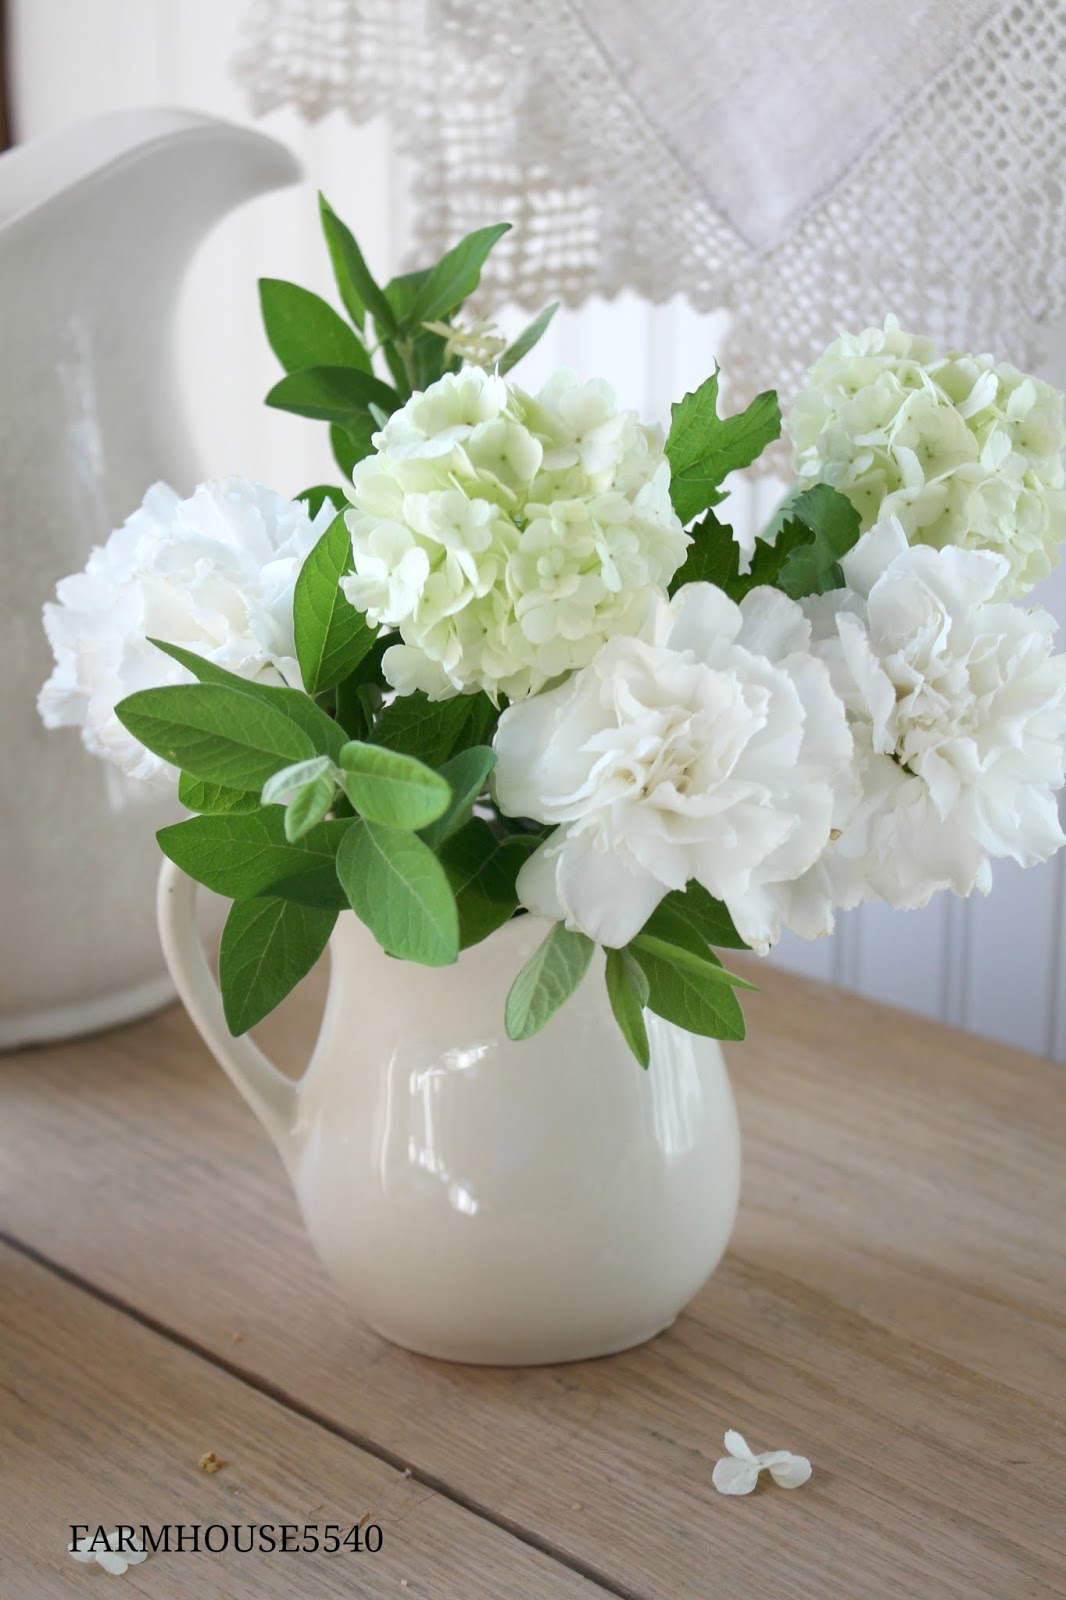 FARMHOUSE 5540 Weekly Inspiration Fresh Cut Flowers